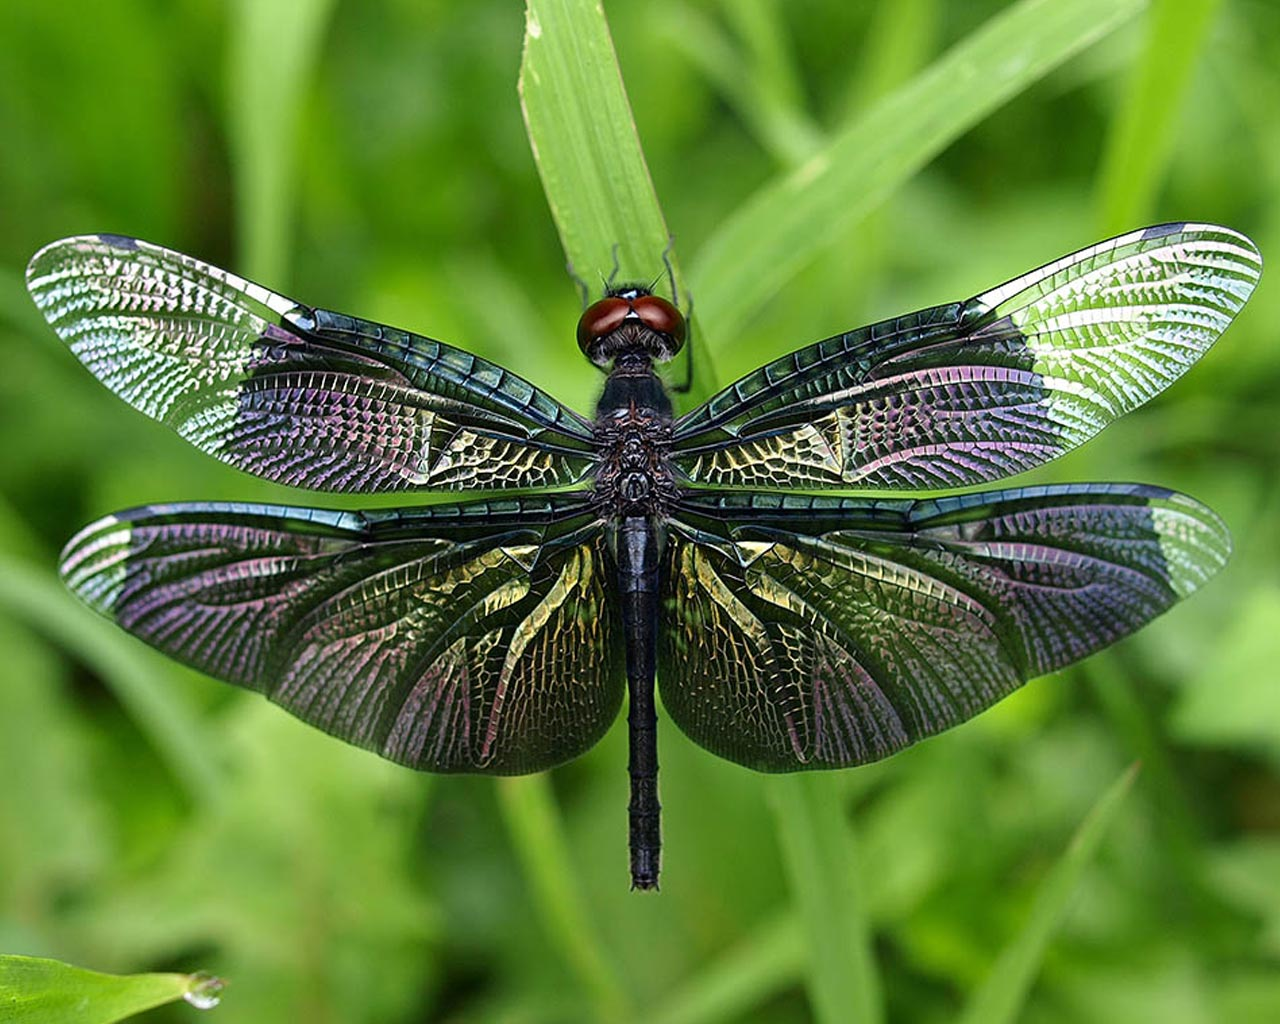 Amazing Dragonfly Insect   Dragonfly Facts Images Information 1280x1024